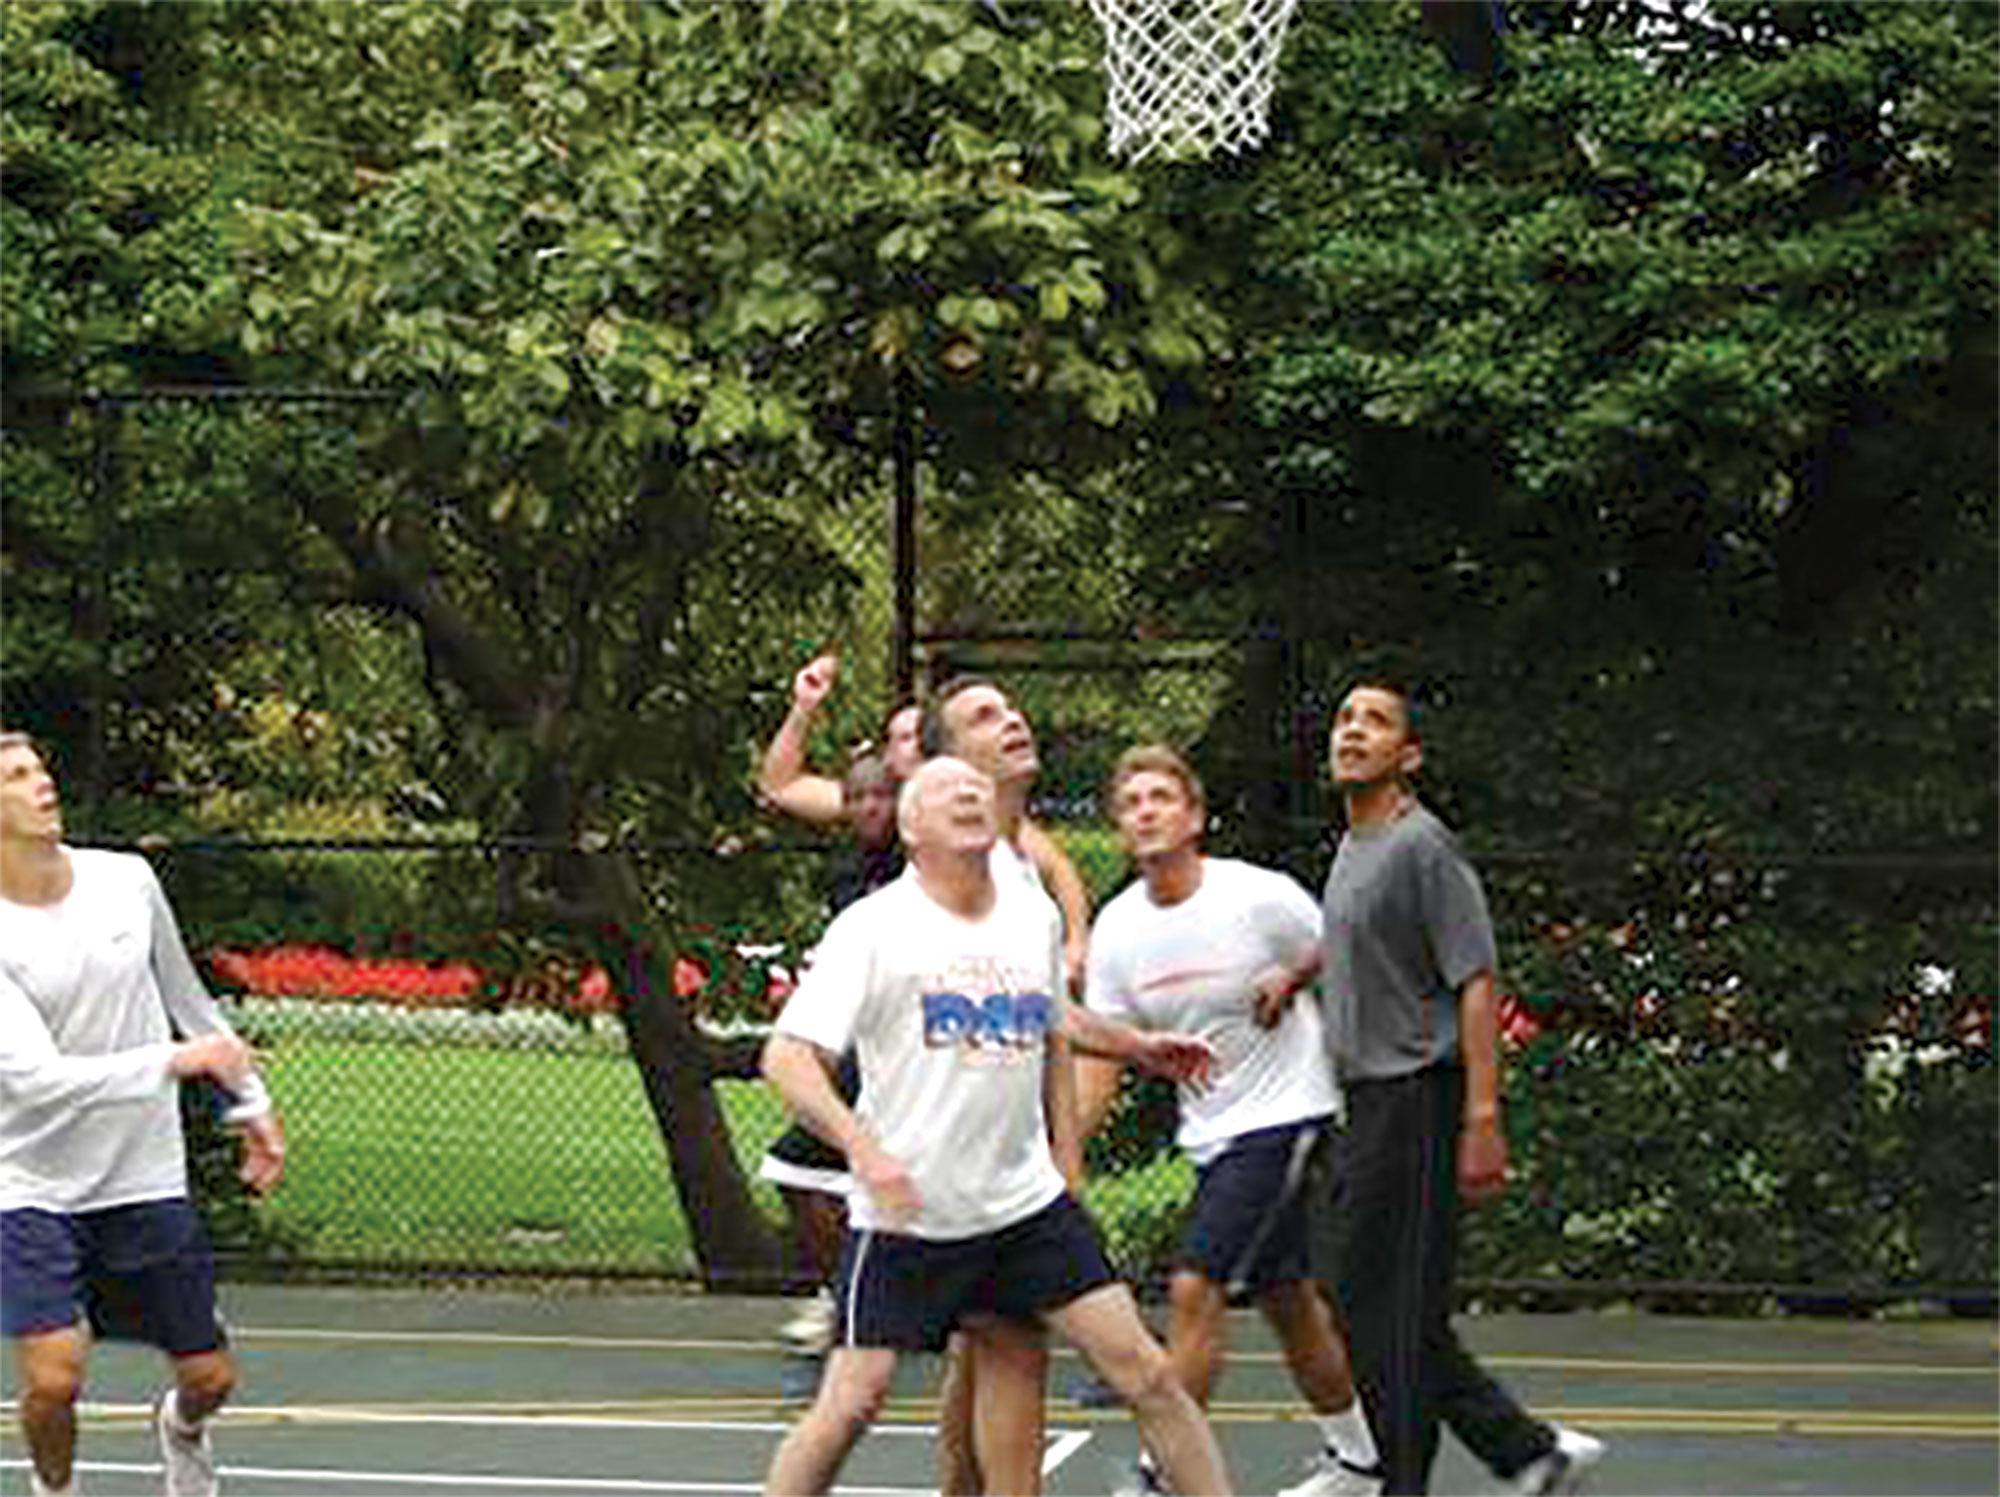 eyeing a rebound during his lone pickup game with President Barack Obama, 2009; Photo courtesy Commons.Wikimedia.org